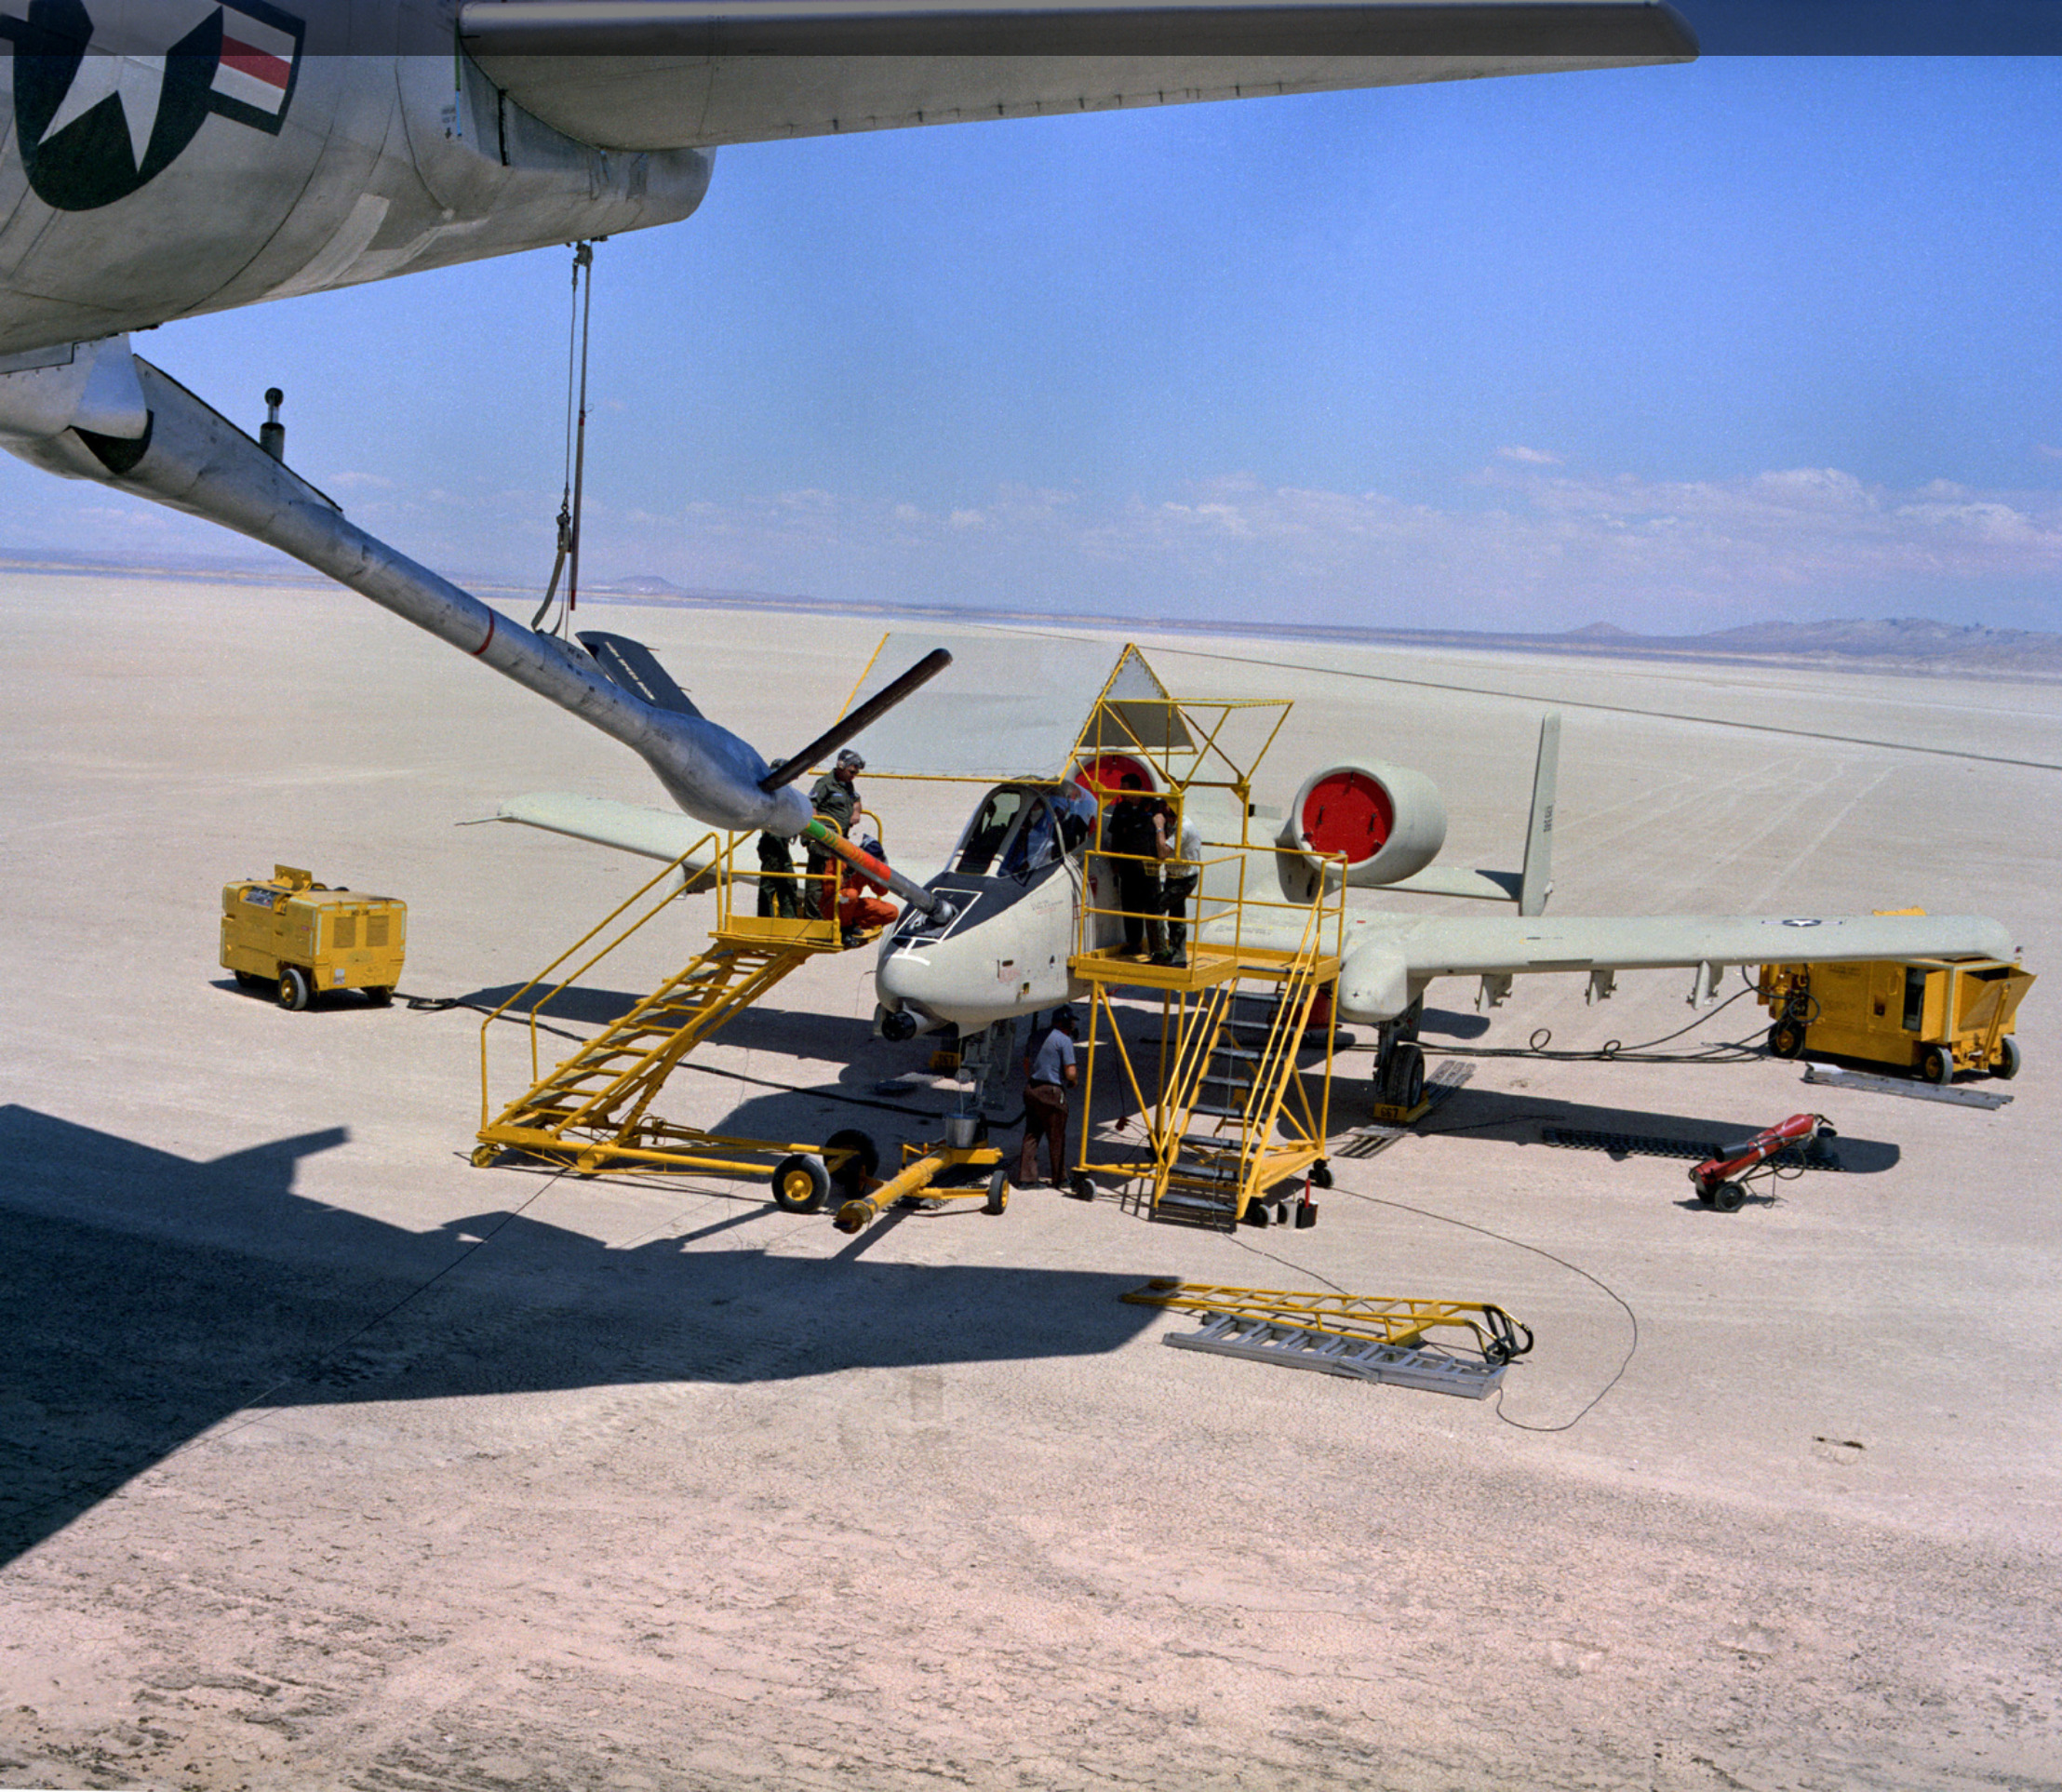 ya-10_aircraft_is_refueled_on_the_ground_by_a_kc-135_stratotanker_aircraft.jpg